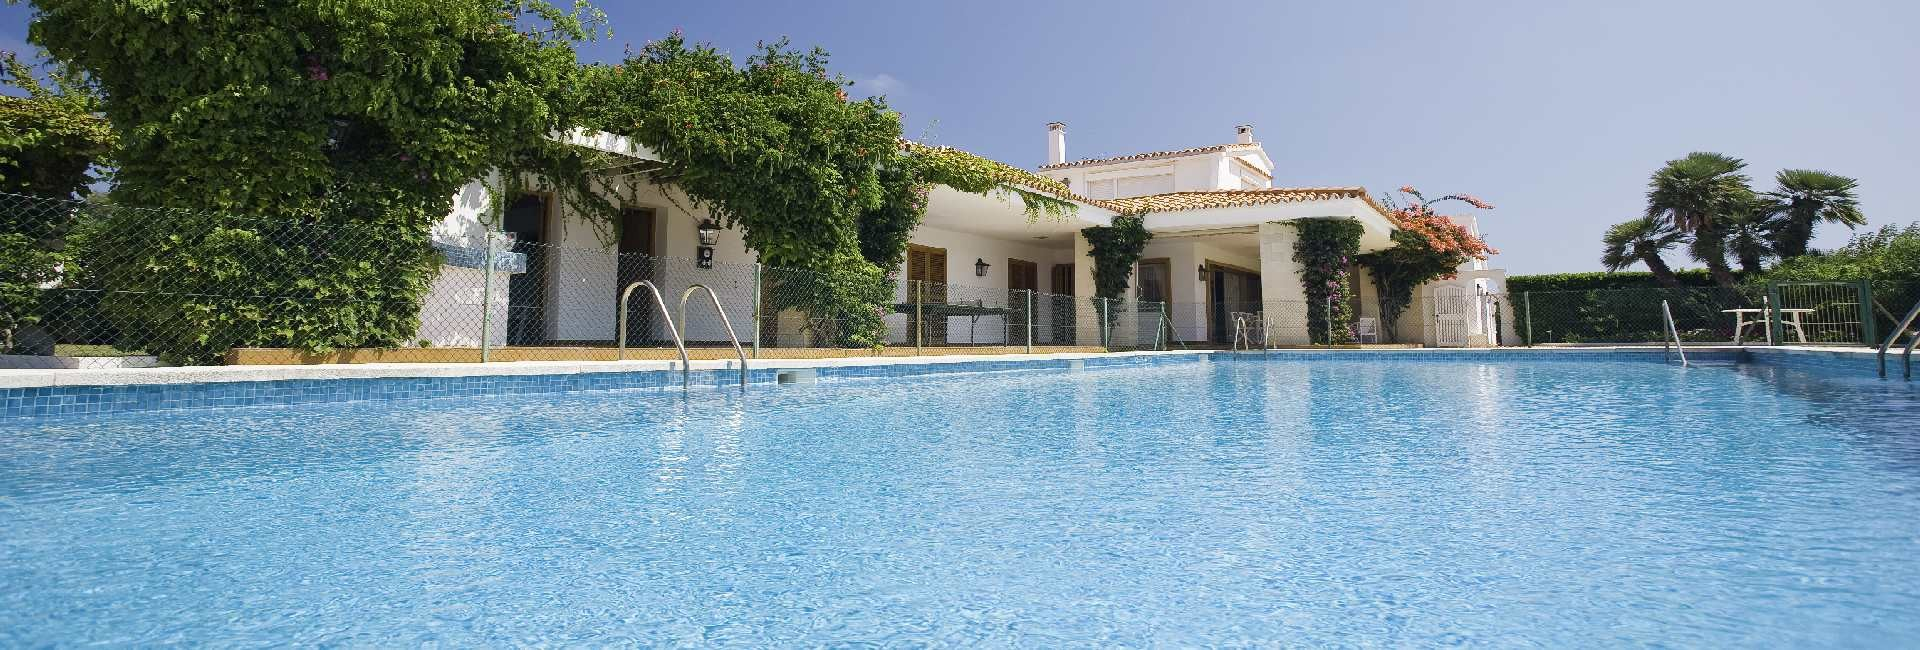 Relax and unwind in S'Algar with your own Villa And Pool